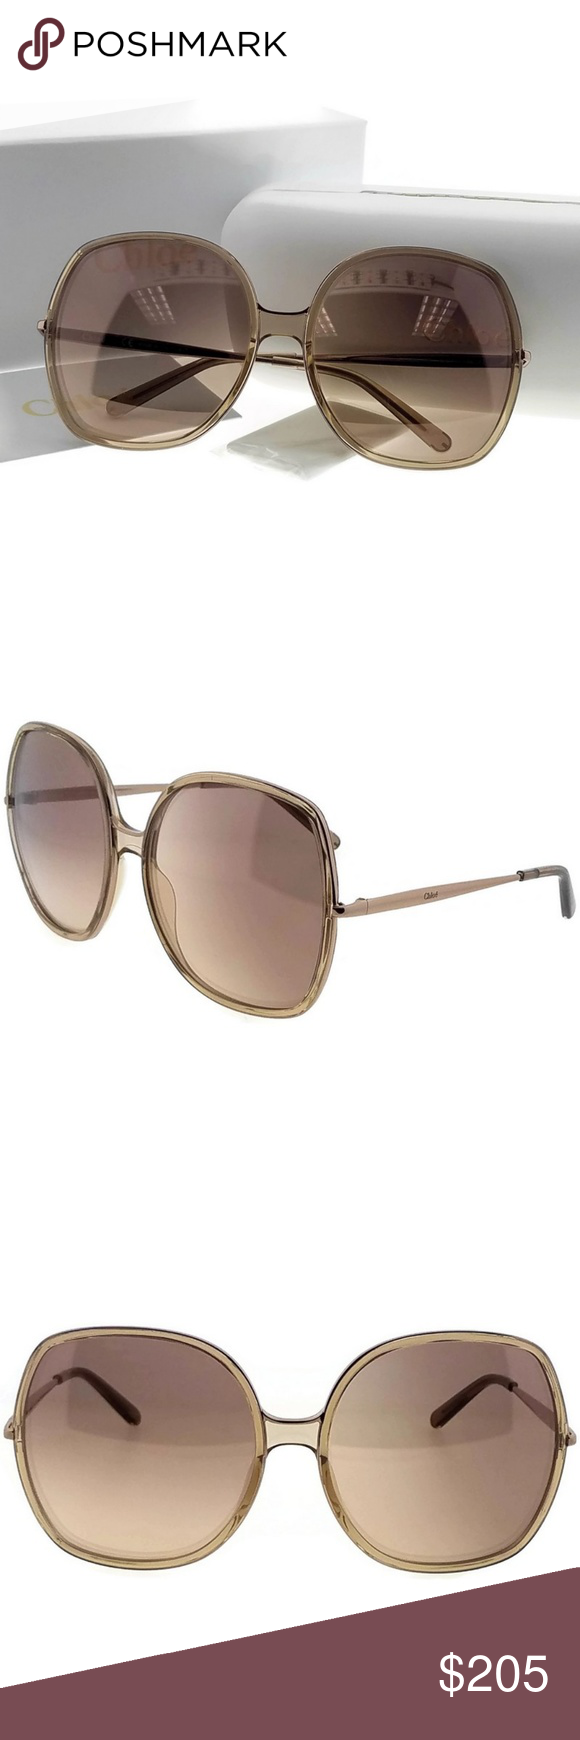 78cdae7f1af2 Chloe CE725S-290-62 Sunglasses New gorgeous authentic Chloe CE725S-290-62